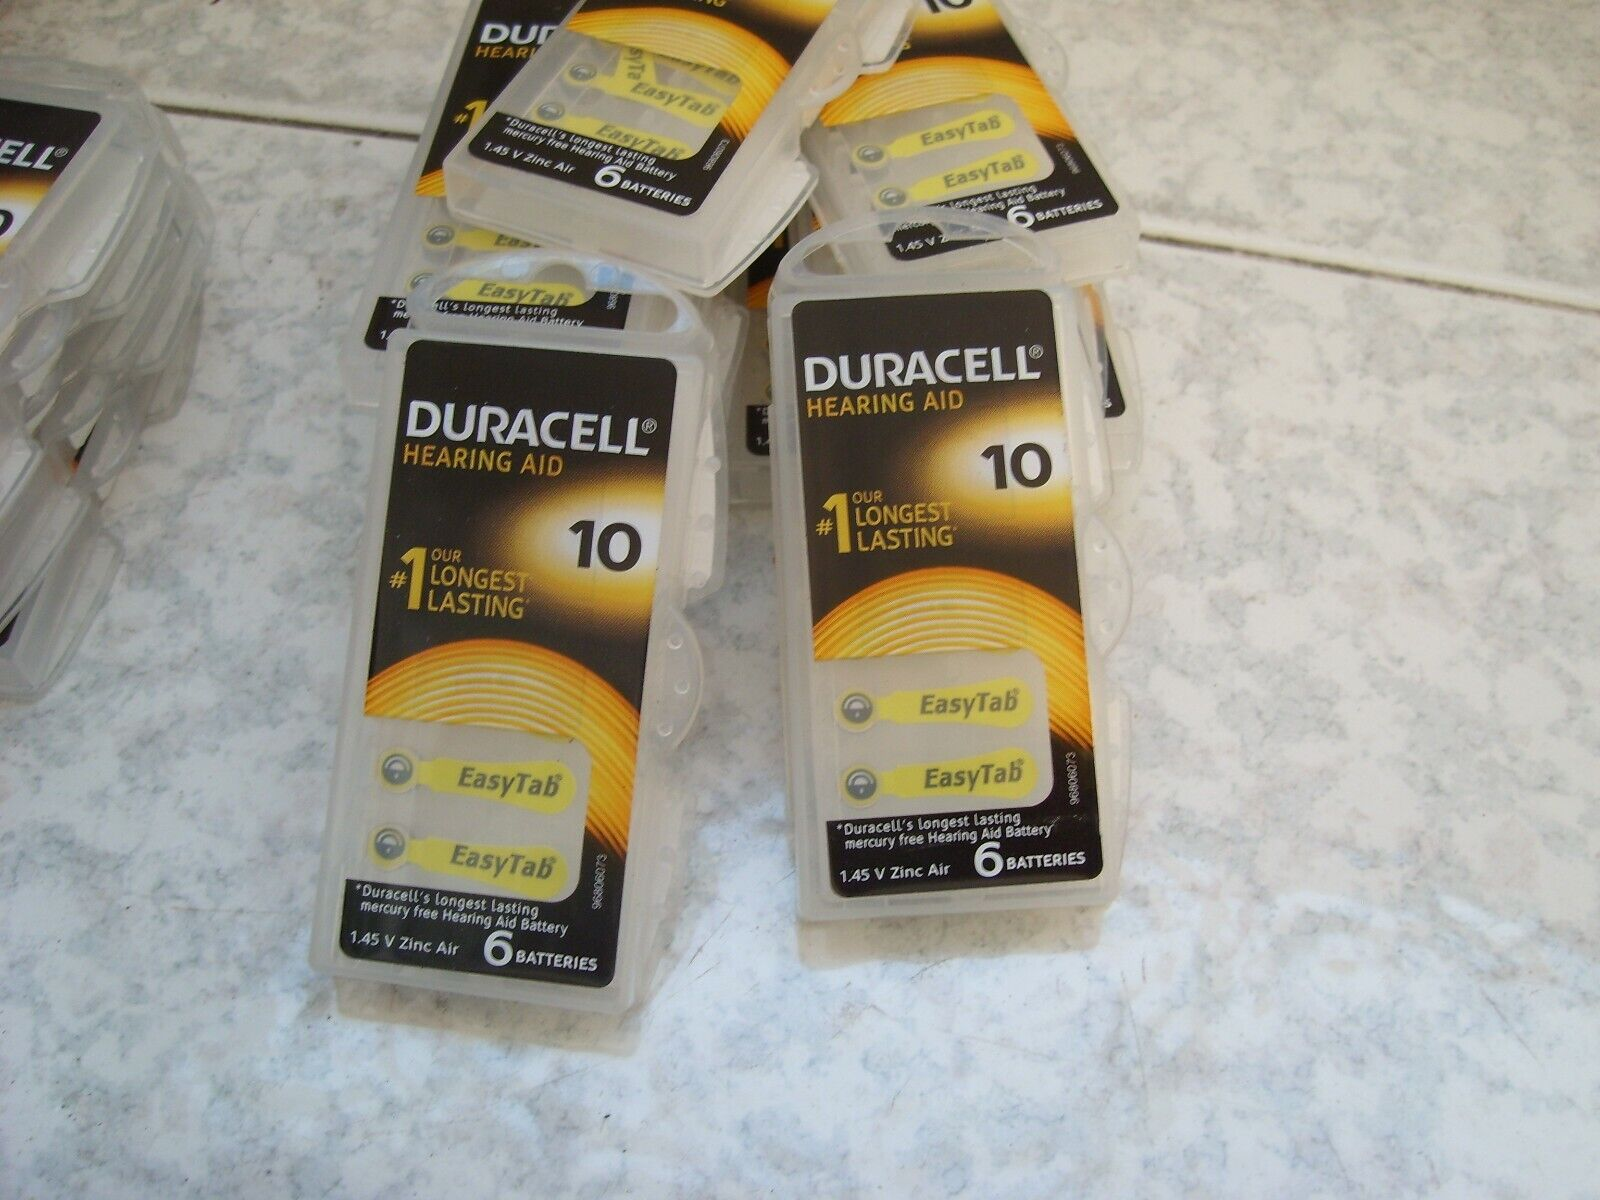 18 Duracell 10 Battery Batteries for pr70 Acoustic Apparatus prosthesis